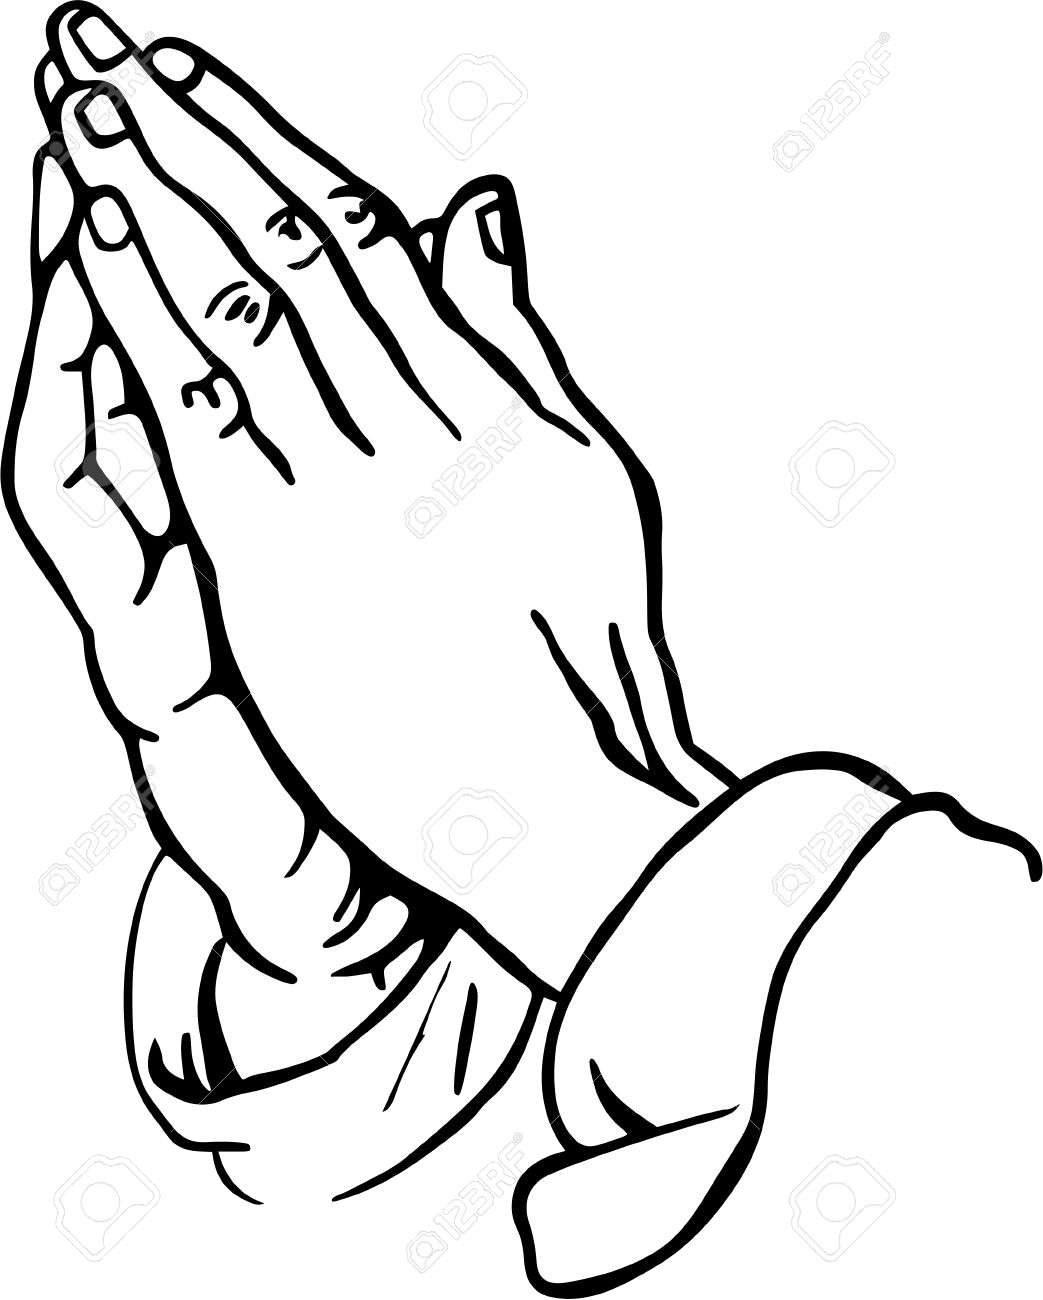 Free christian clipart praying hands jpg free library Praying Hands Namaste Clipart Collection Of Free Silhouette Png - AZPng jpg free library